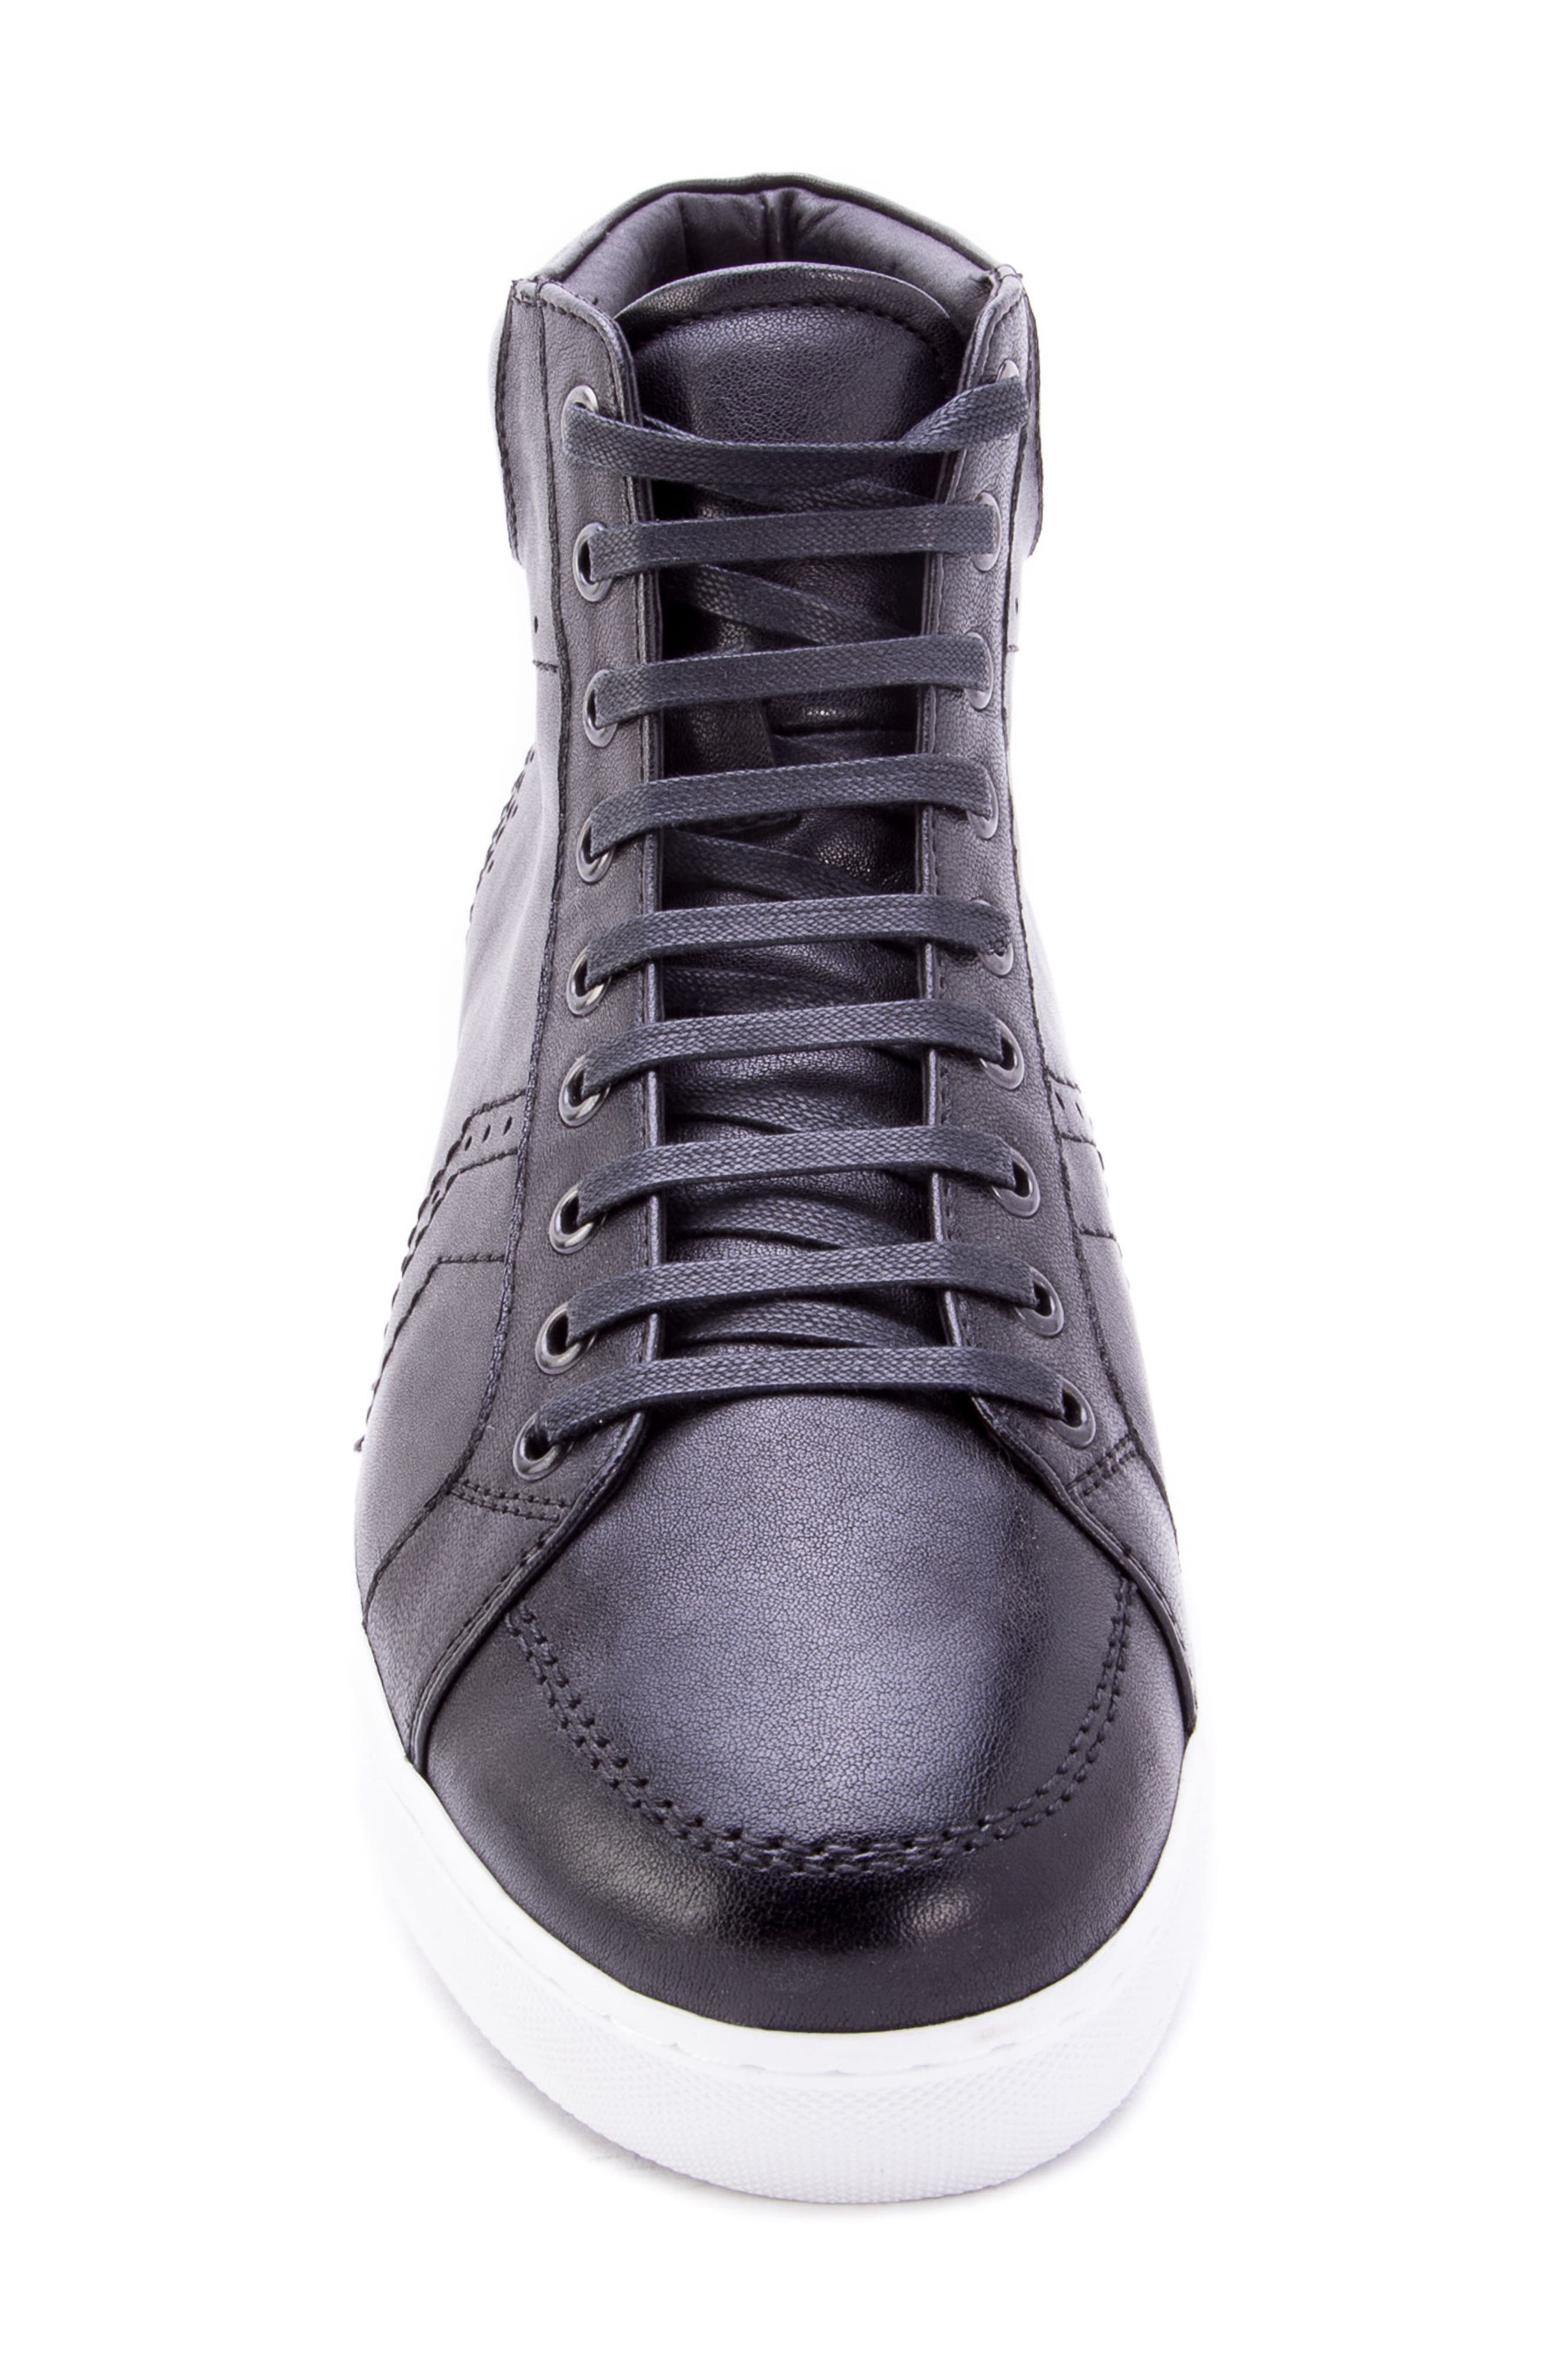 Uglow Perforated High Top Sneaker,                             Alternate thumbnail 5, color,                             BLACK LEATHER